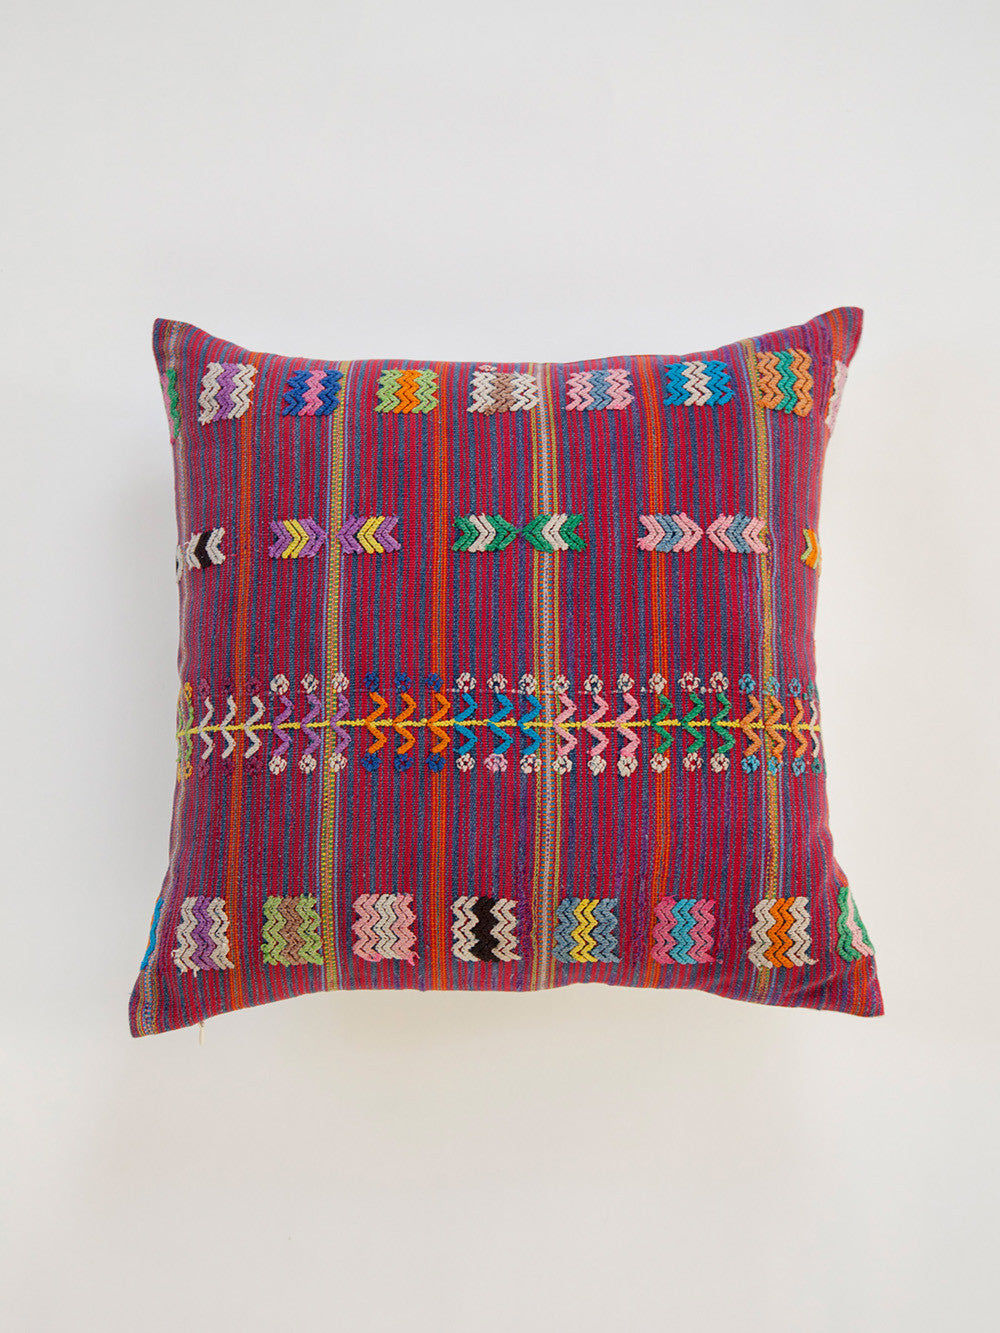 Vintage Guatemalan Pillow